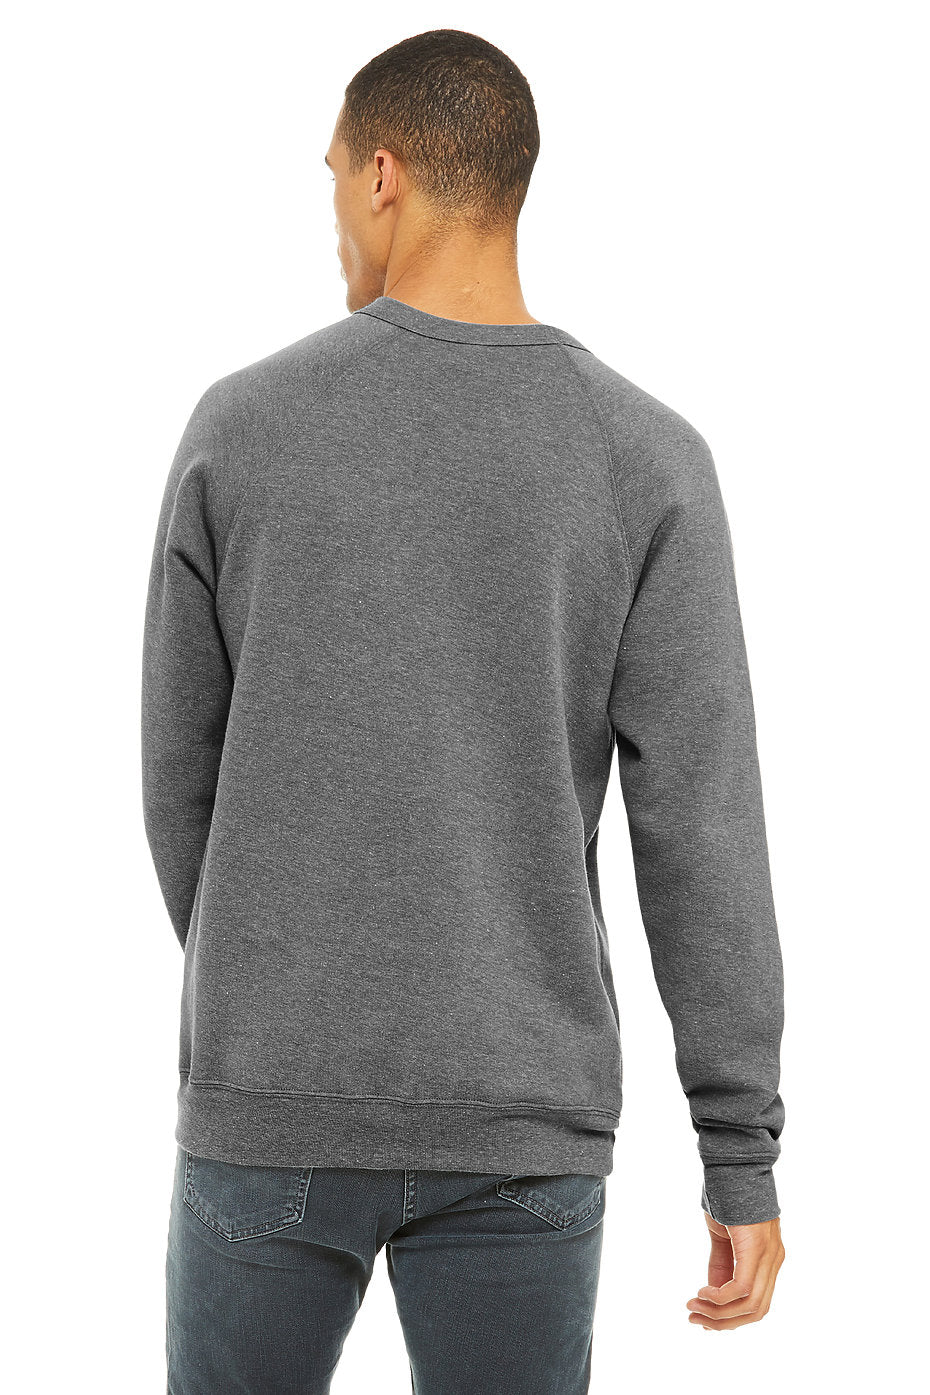 "Gray ""Organic Eye"" Sweatshirt"